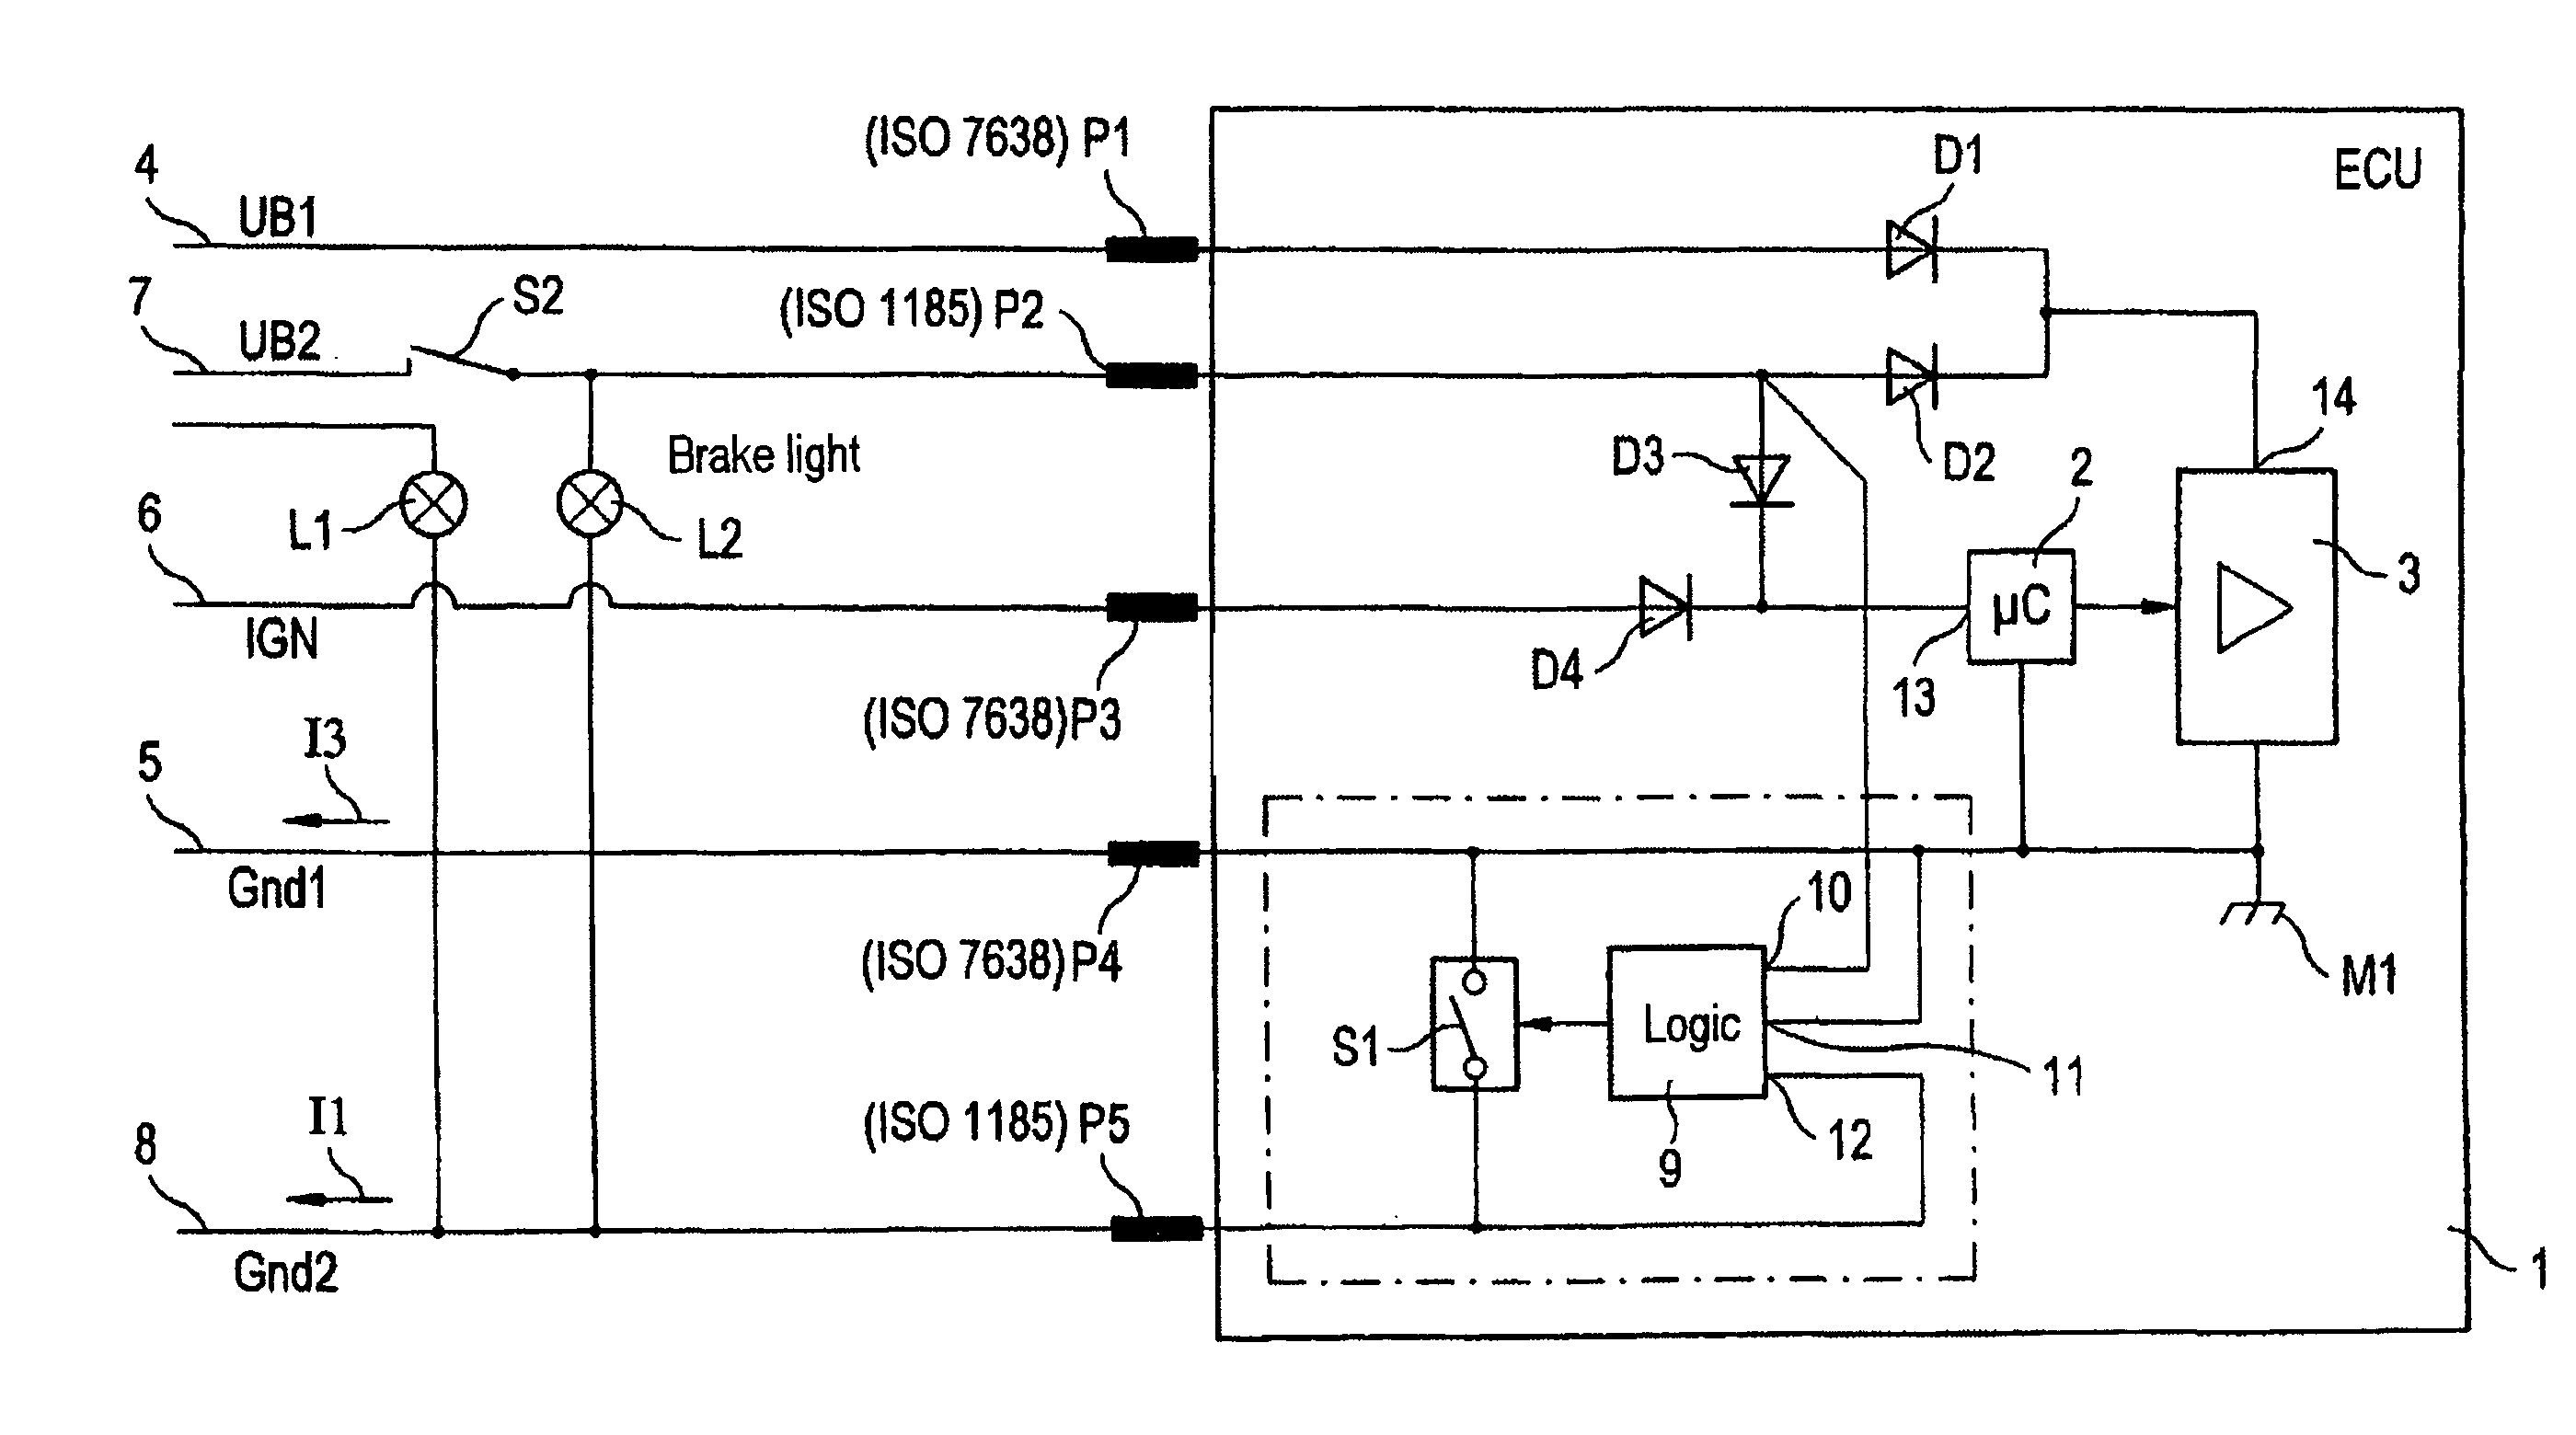 iso 7638 wiring diagram 23 wiring diagram images AC Wiring Diagram Radio Wiring Diagram